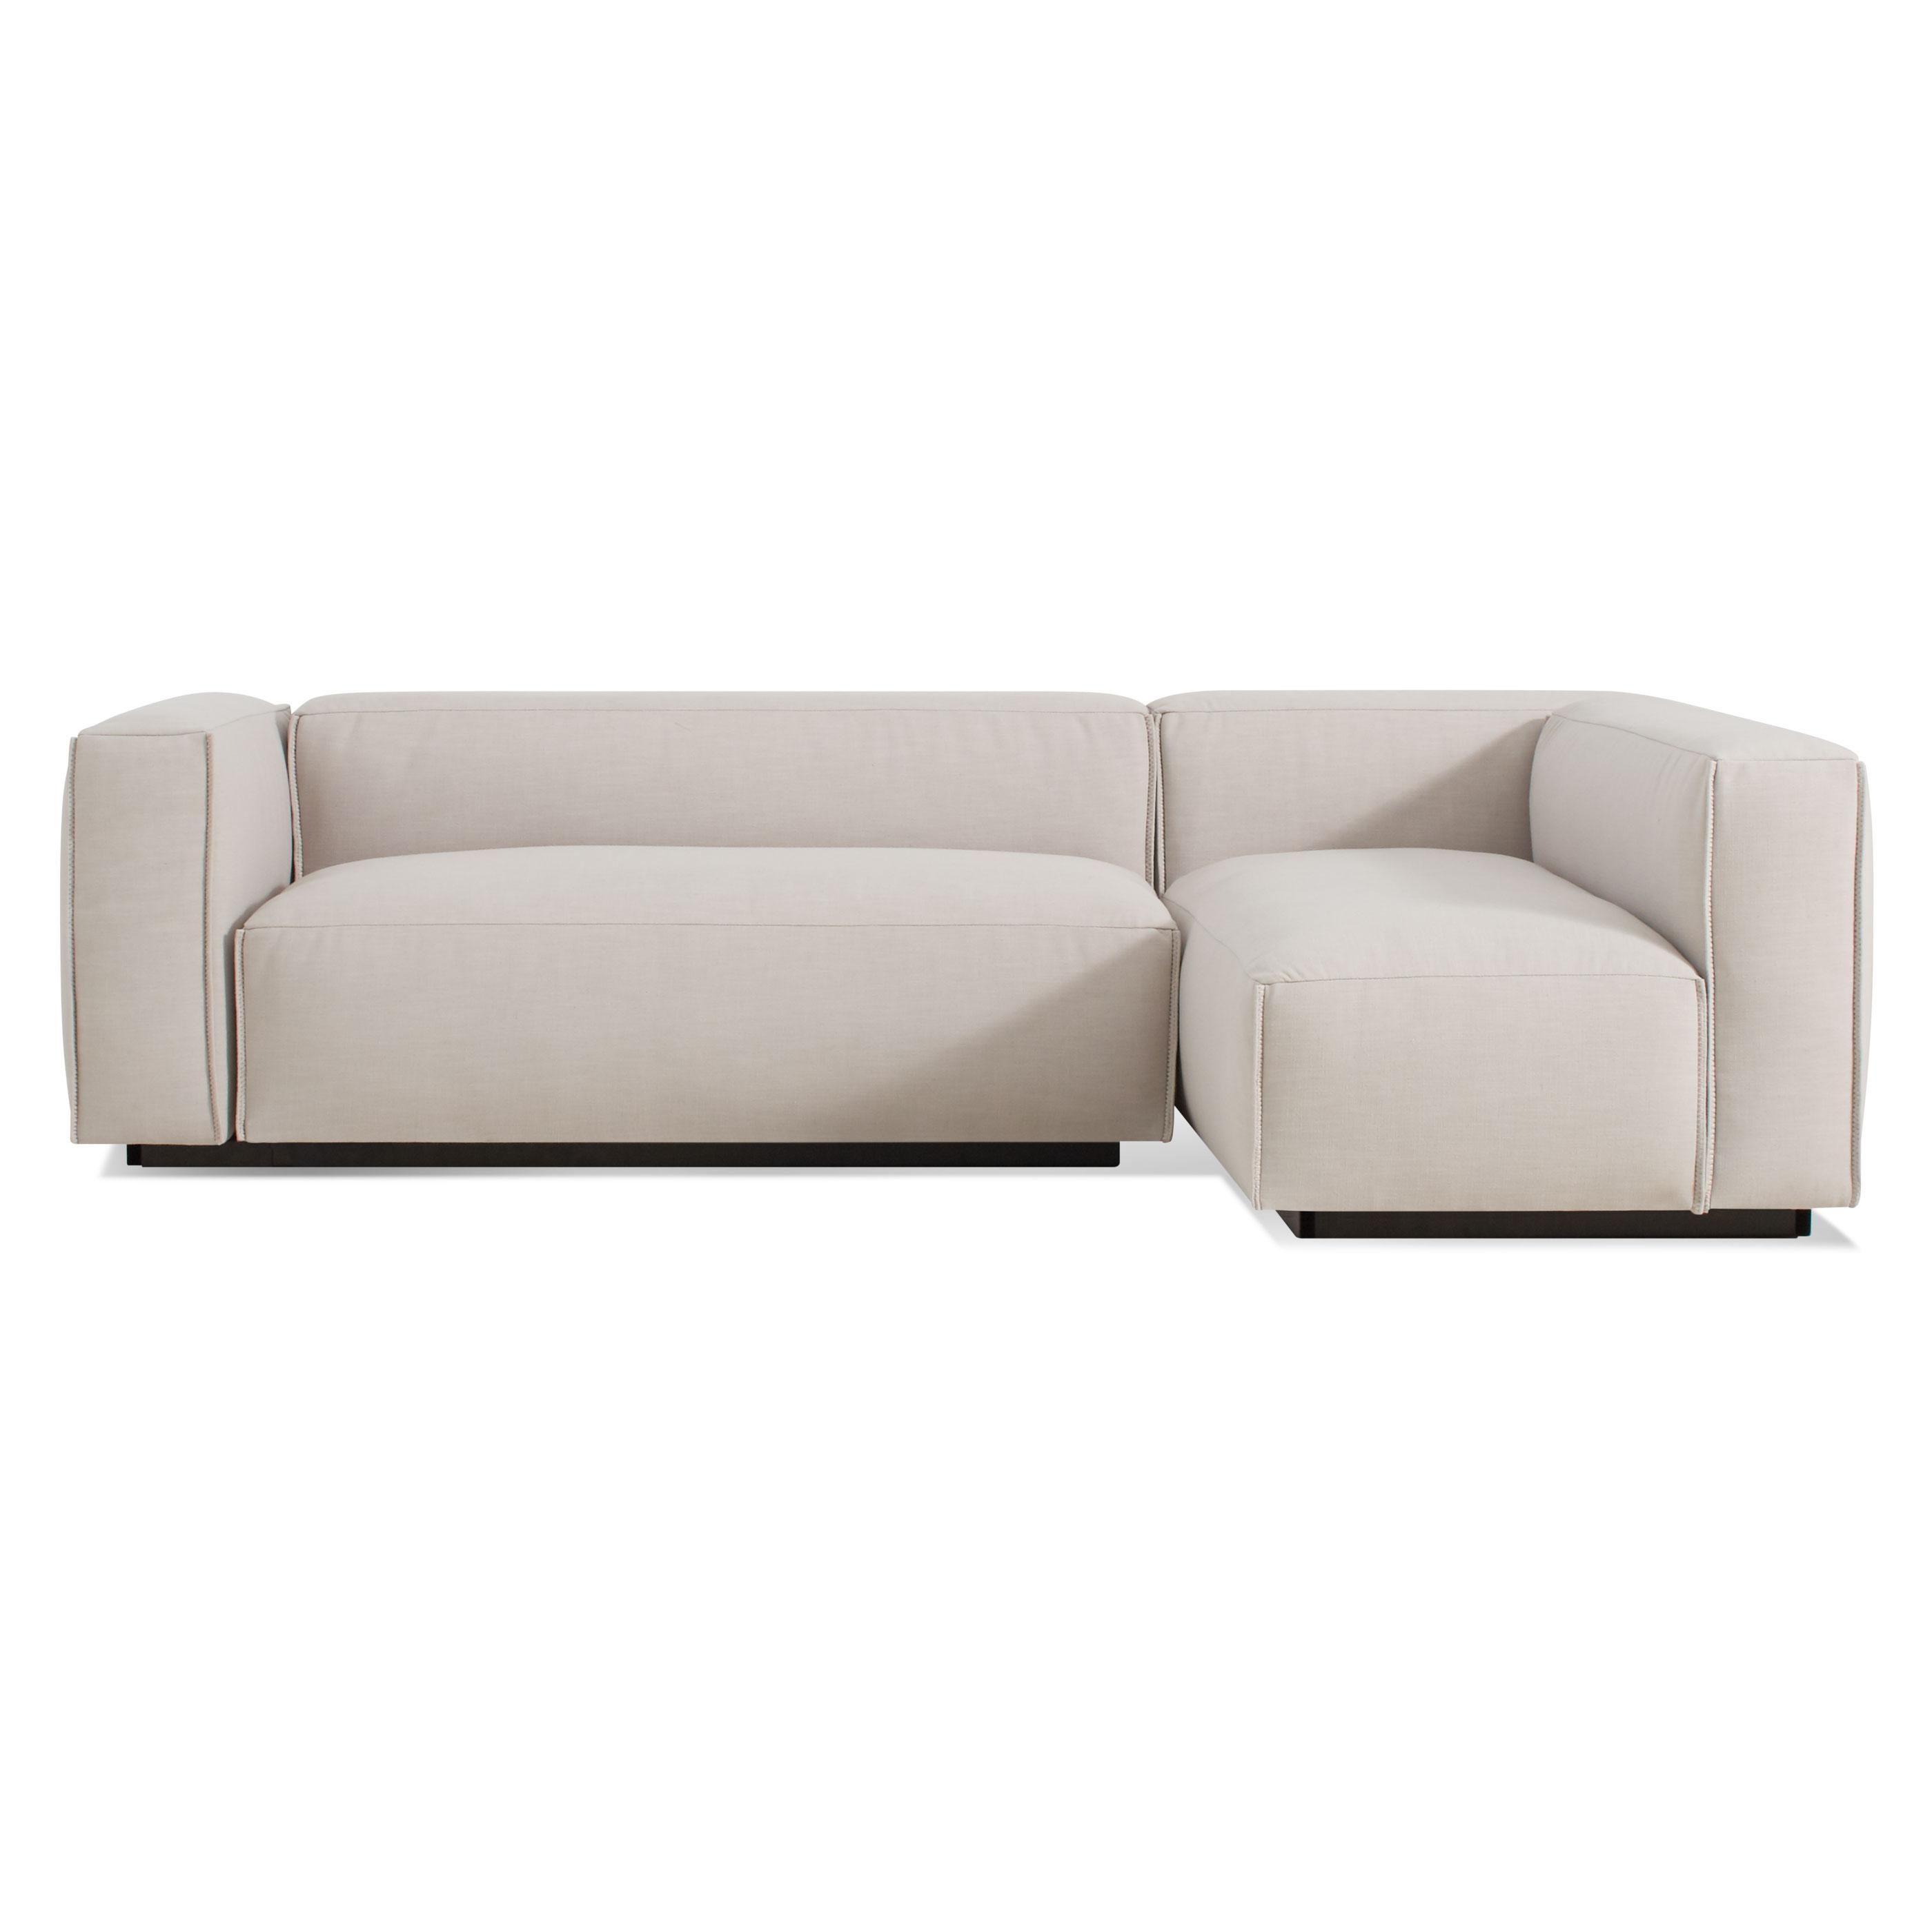 Cleon Small Modern Sectional Sofa | Blu Dot Intended For Mini Sectional Sofas (View 9 of 20)